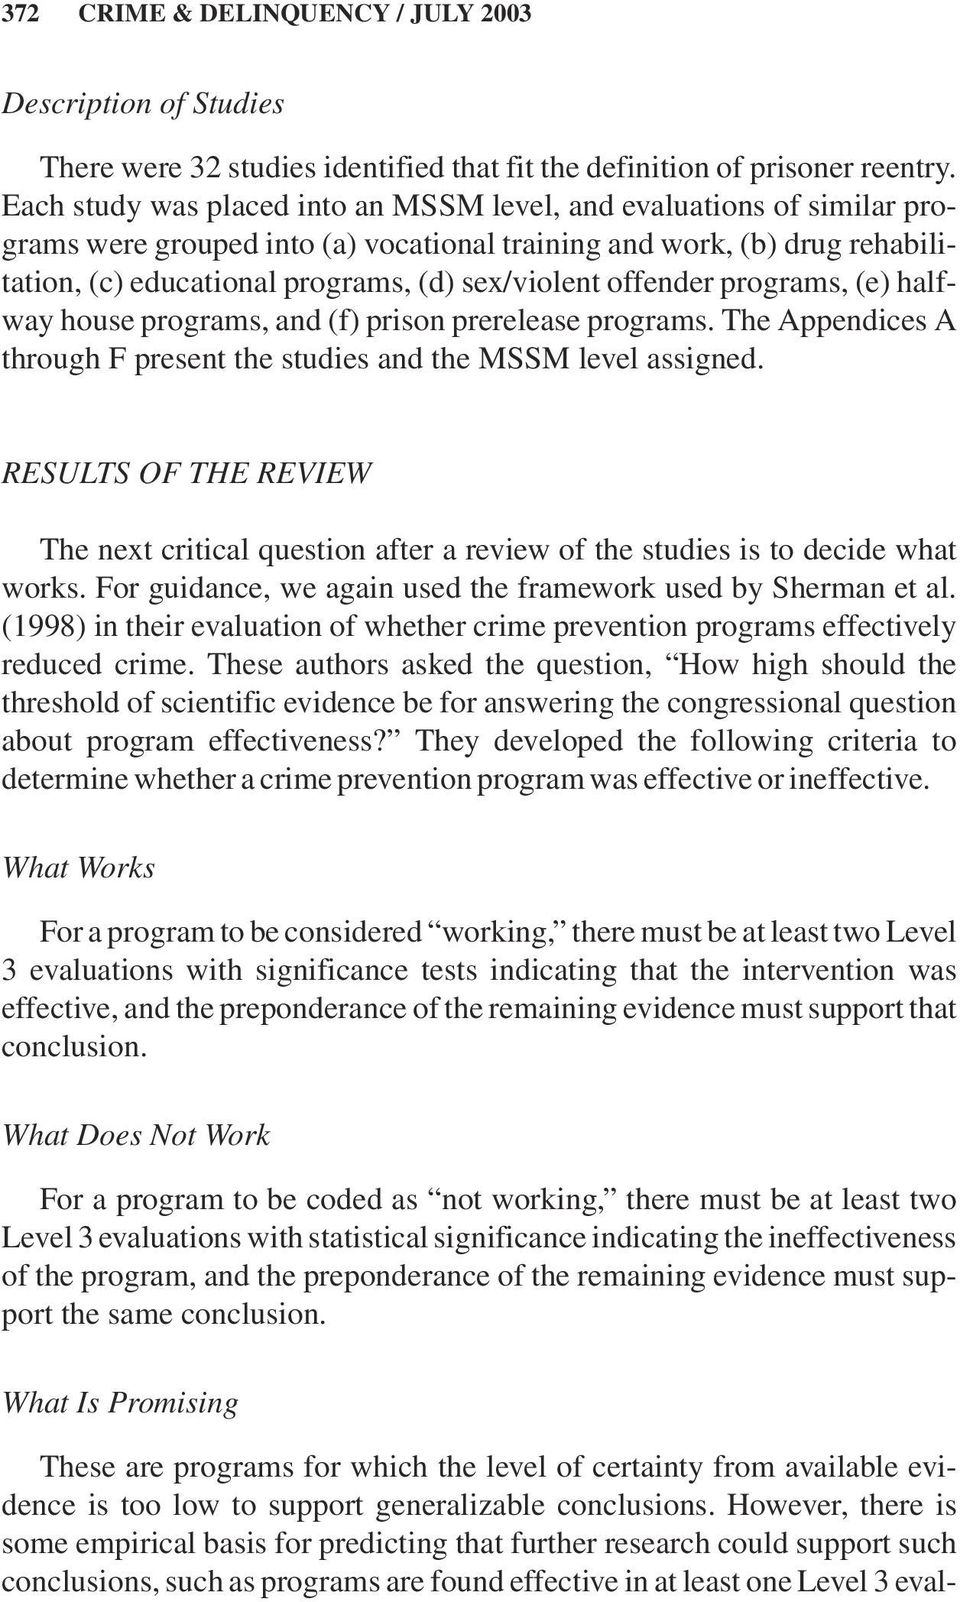 offender programs, (e) halfway house programs, and (f) prison prerelease programs. The Appendices A through F present the studies and the MSSM level assigned.